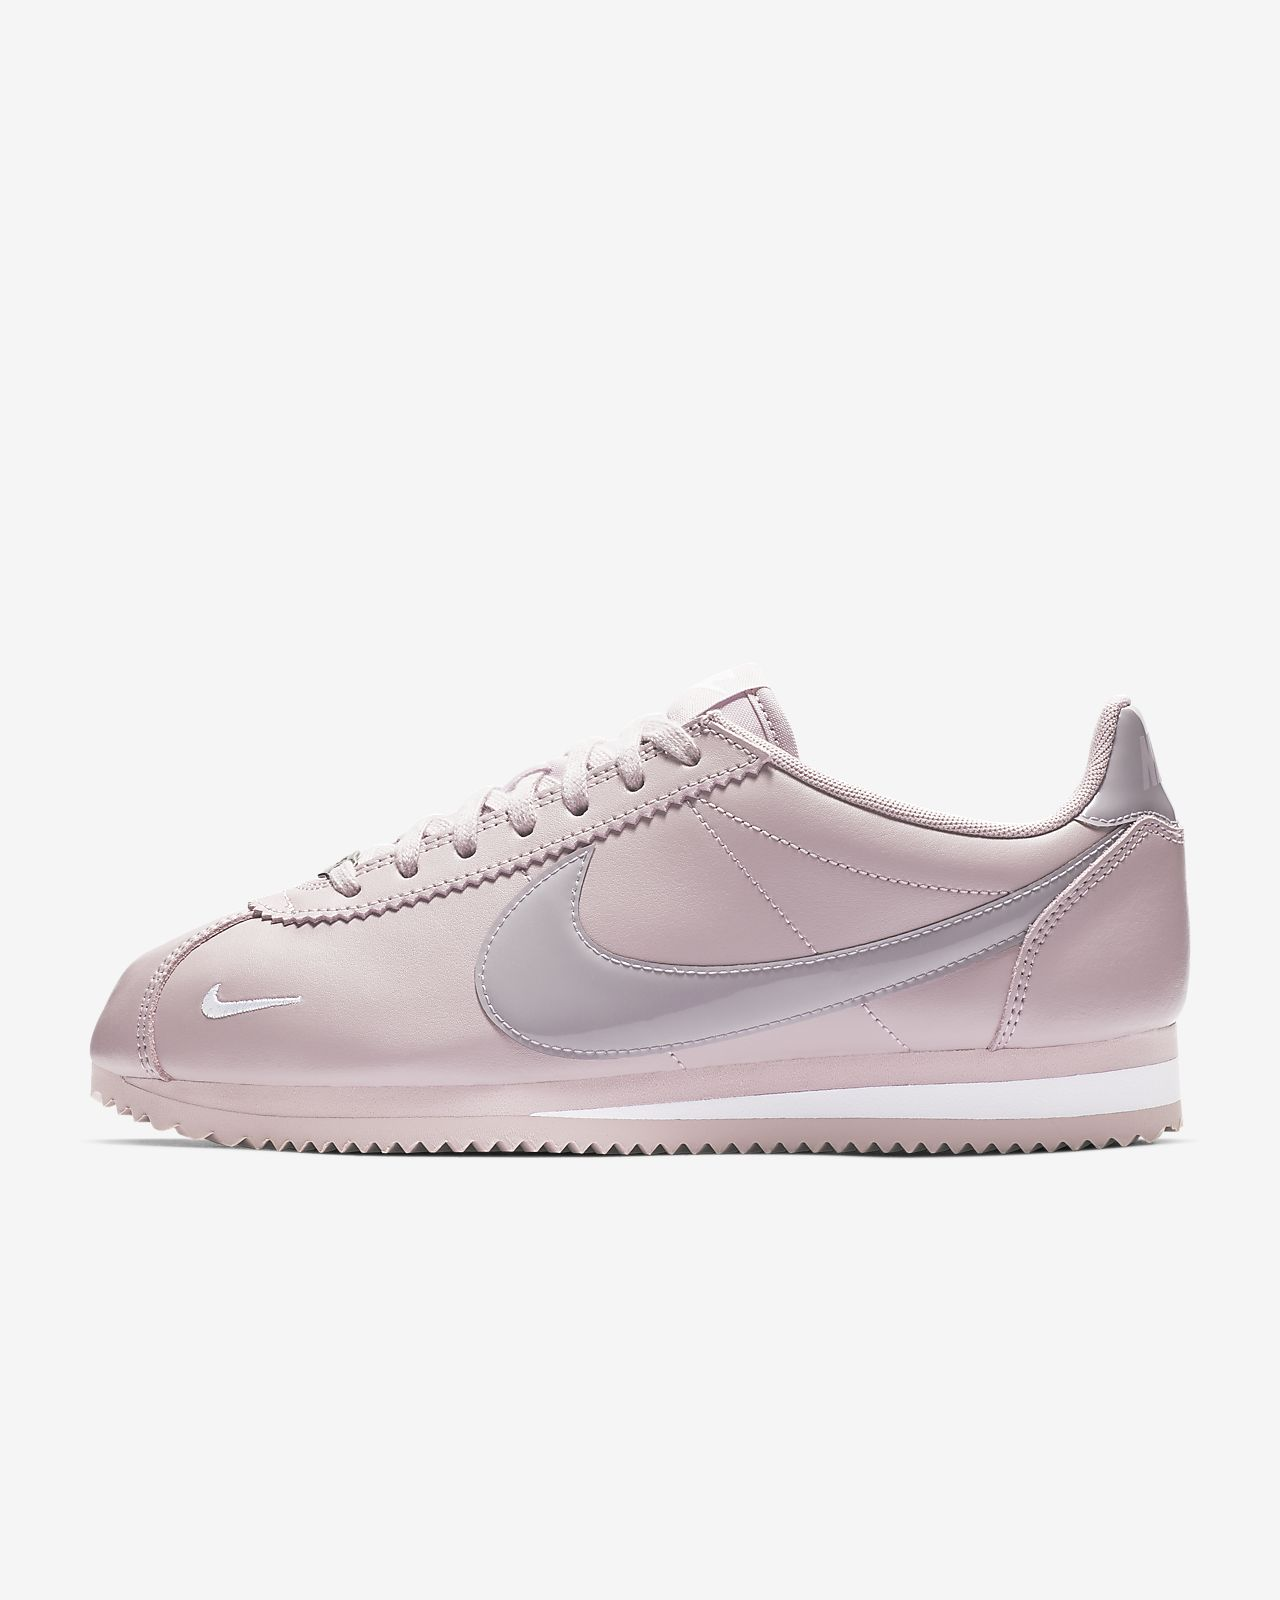 finest selection 73685 f4f12 ... Nike Classic Cortez Premium Women s Shoe